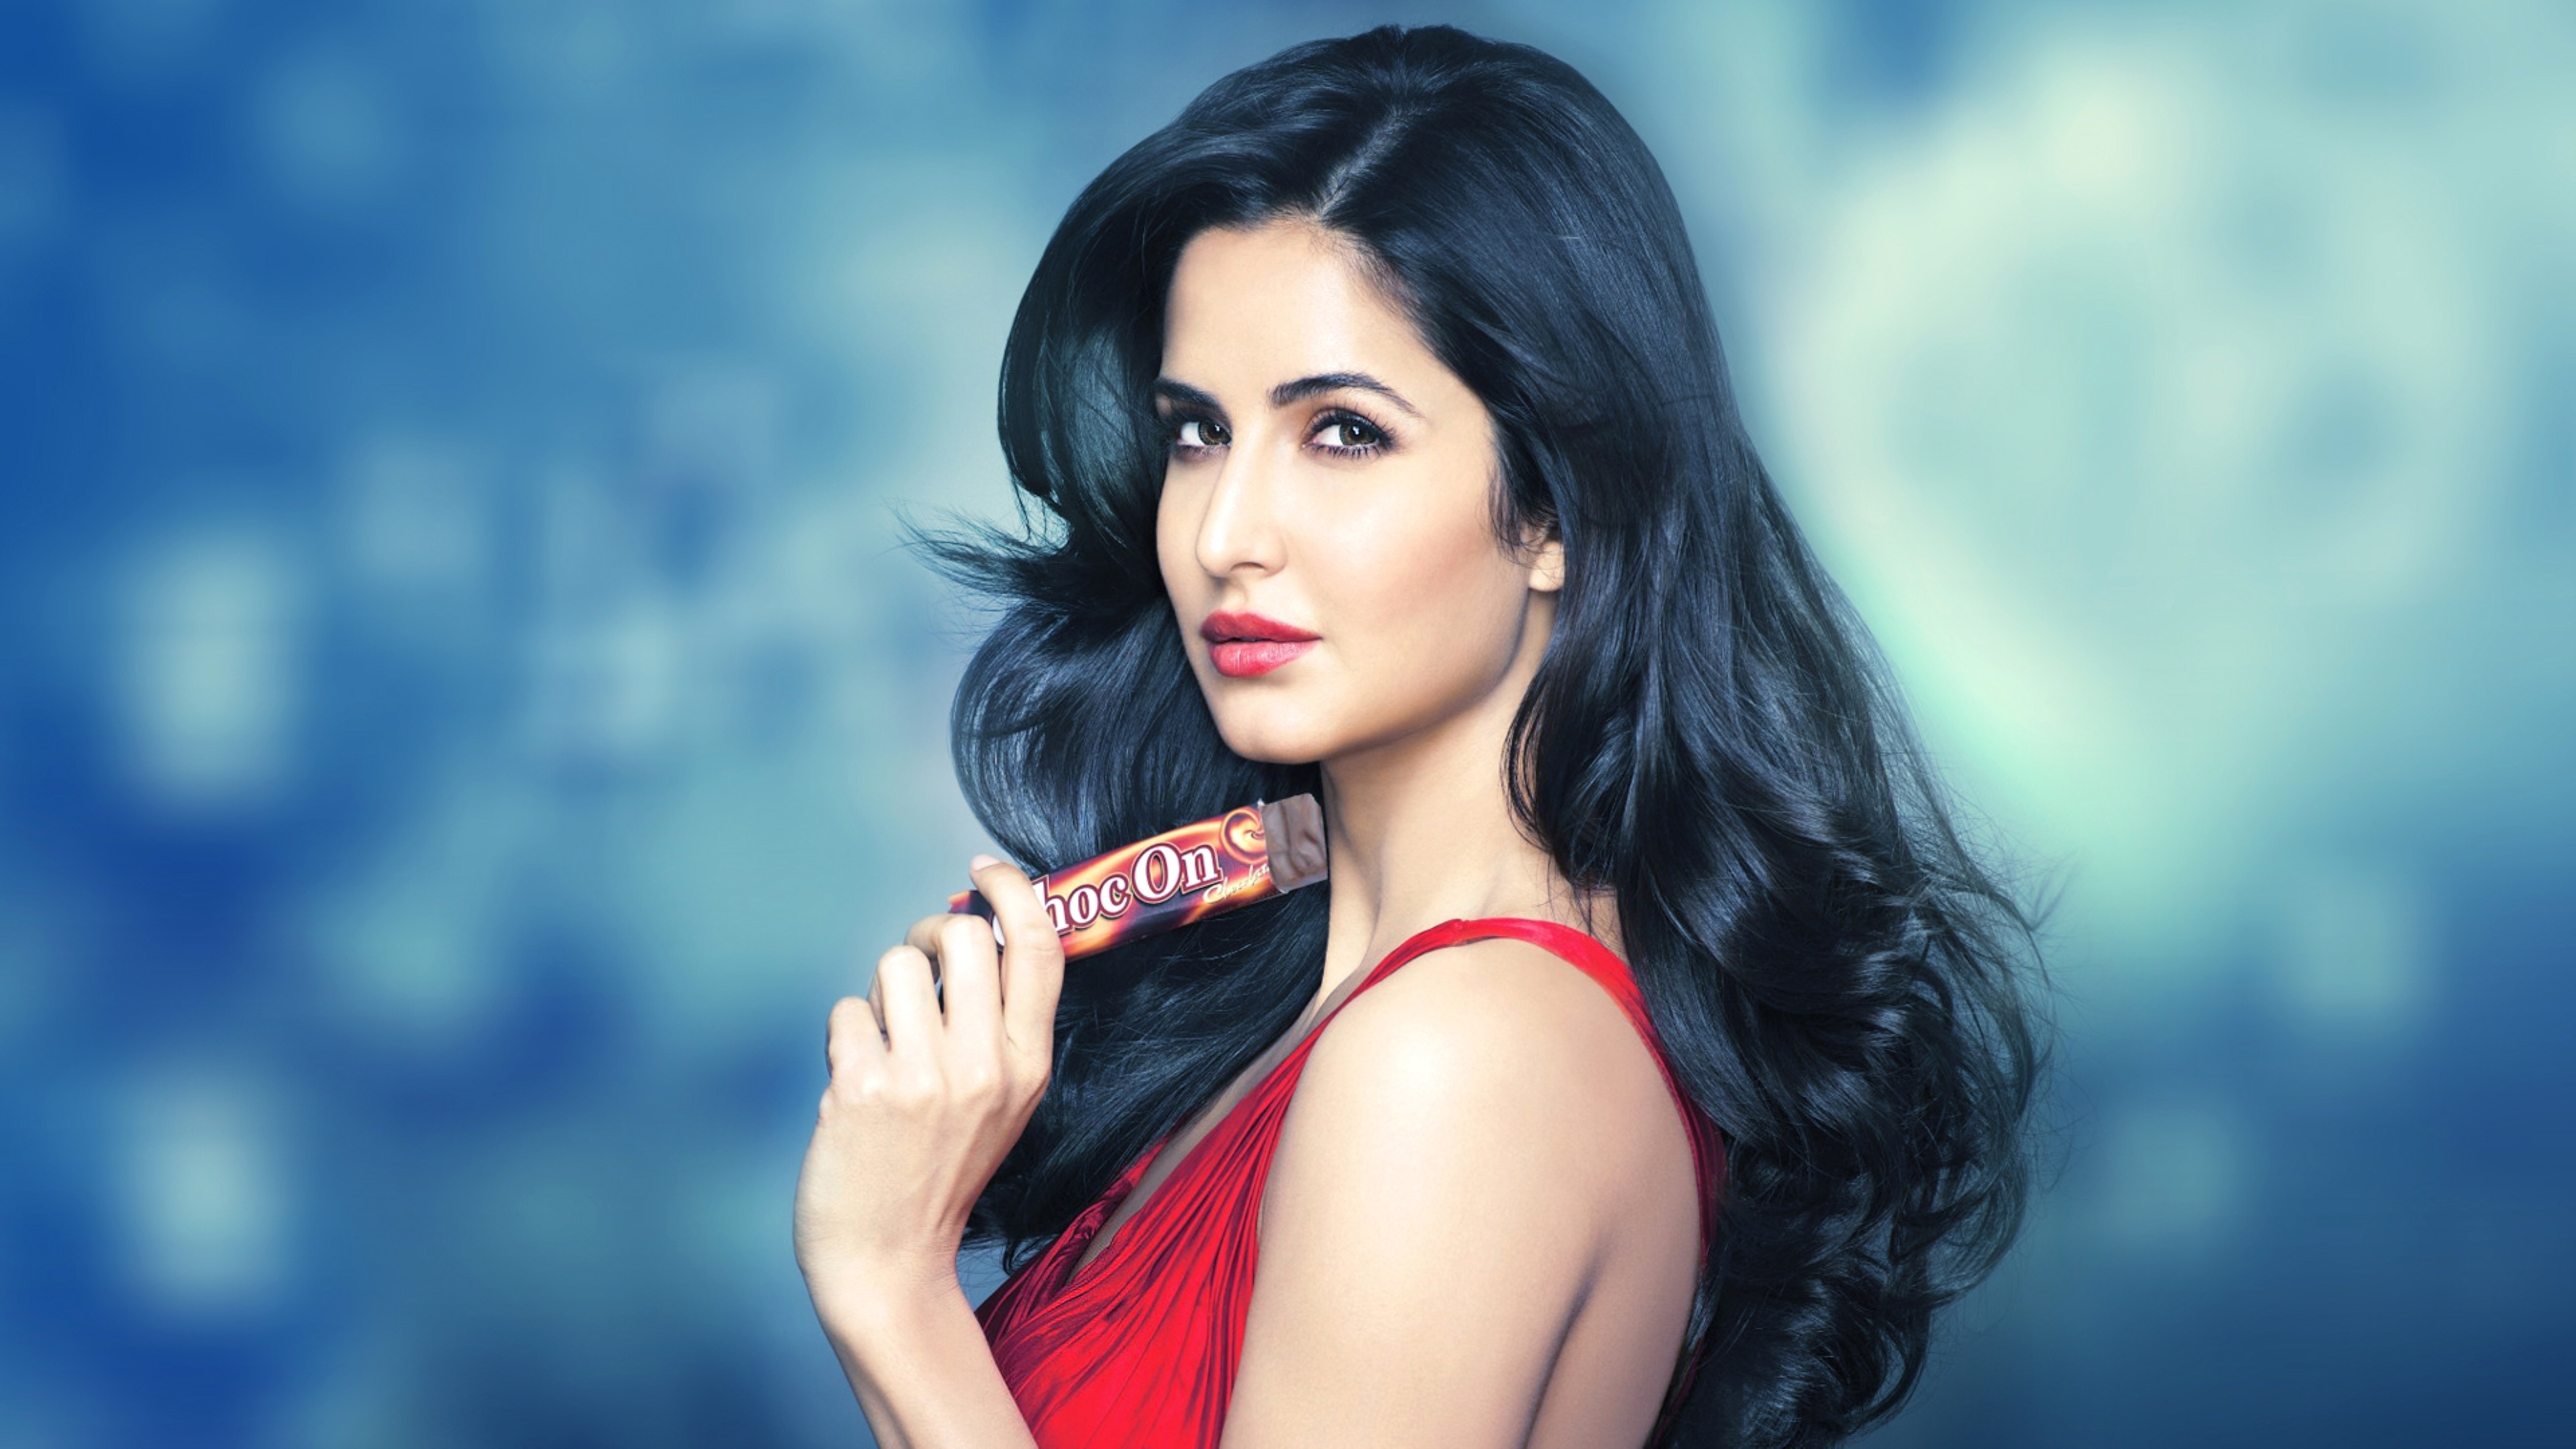 katrina kaif 4k ultra hd full hd wallpaper red dress 86w25